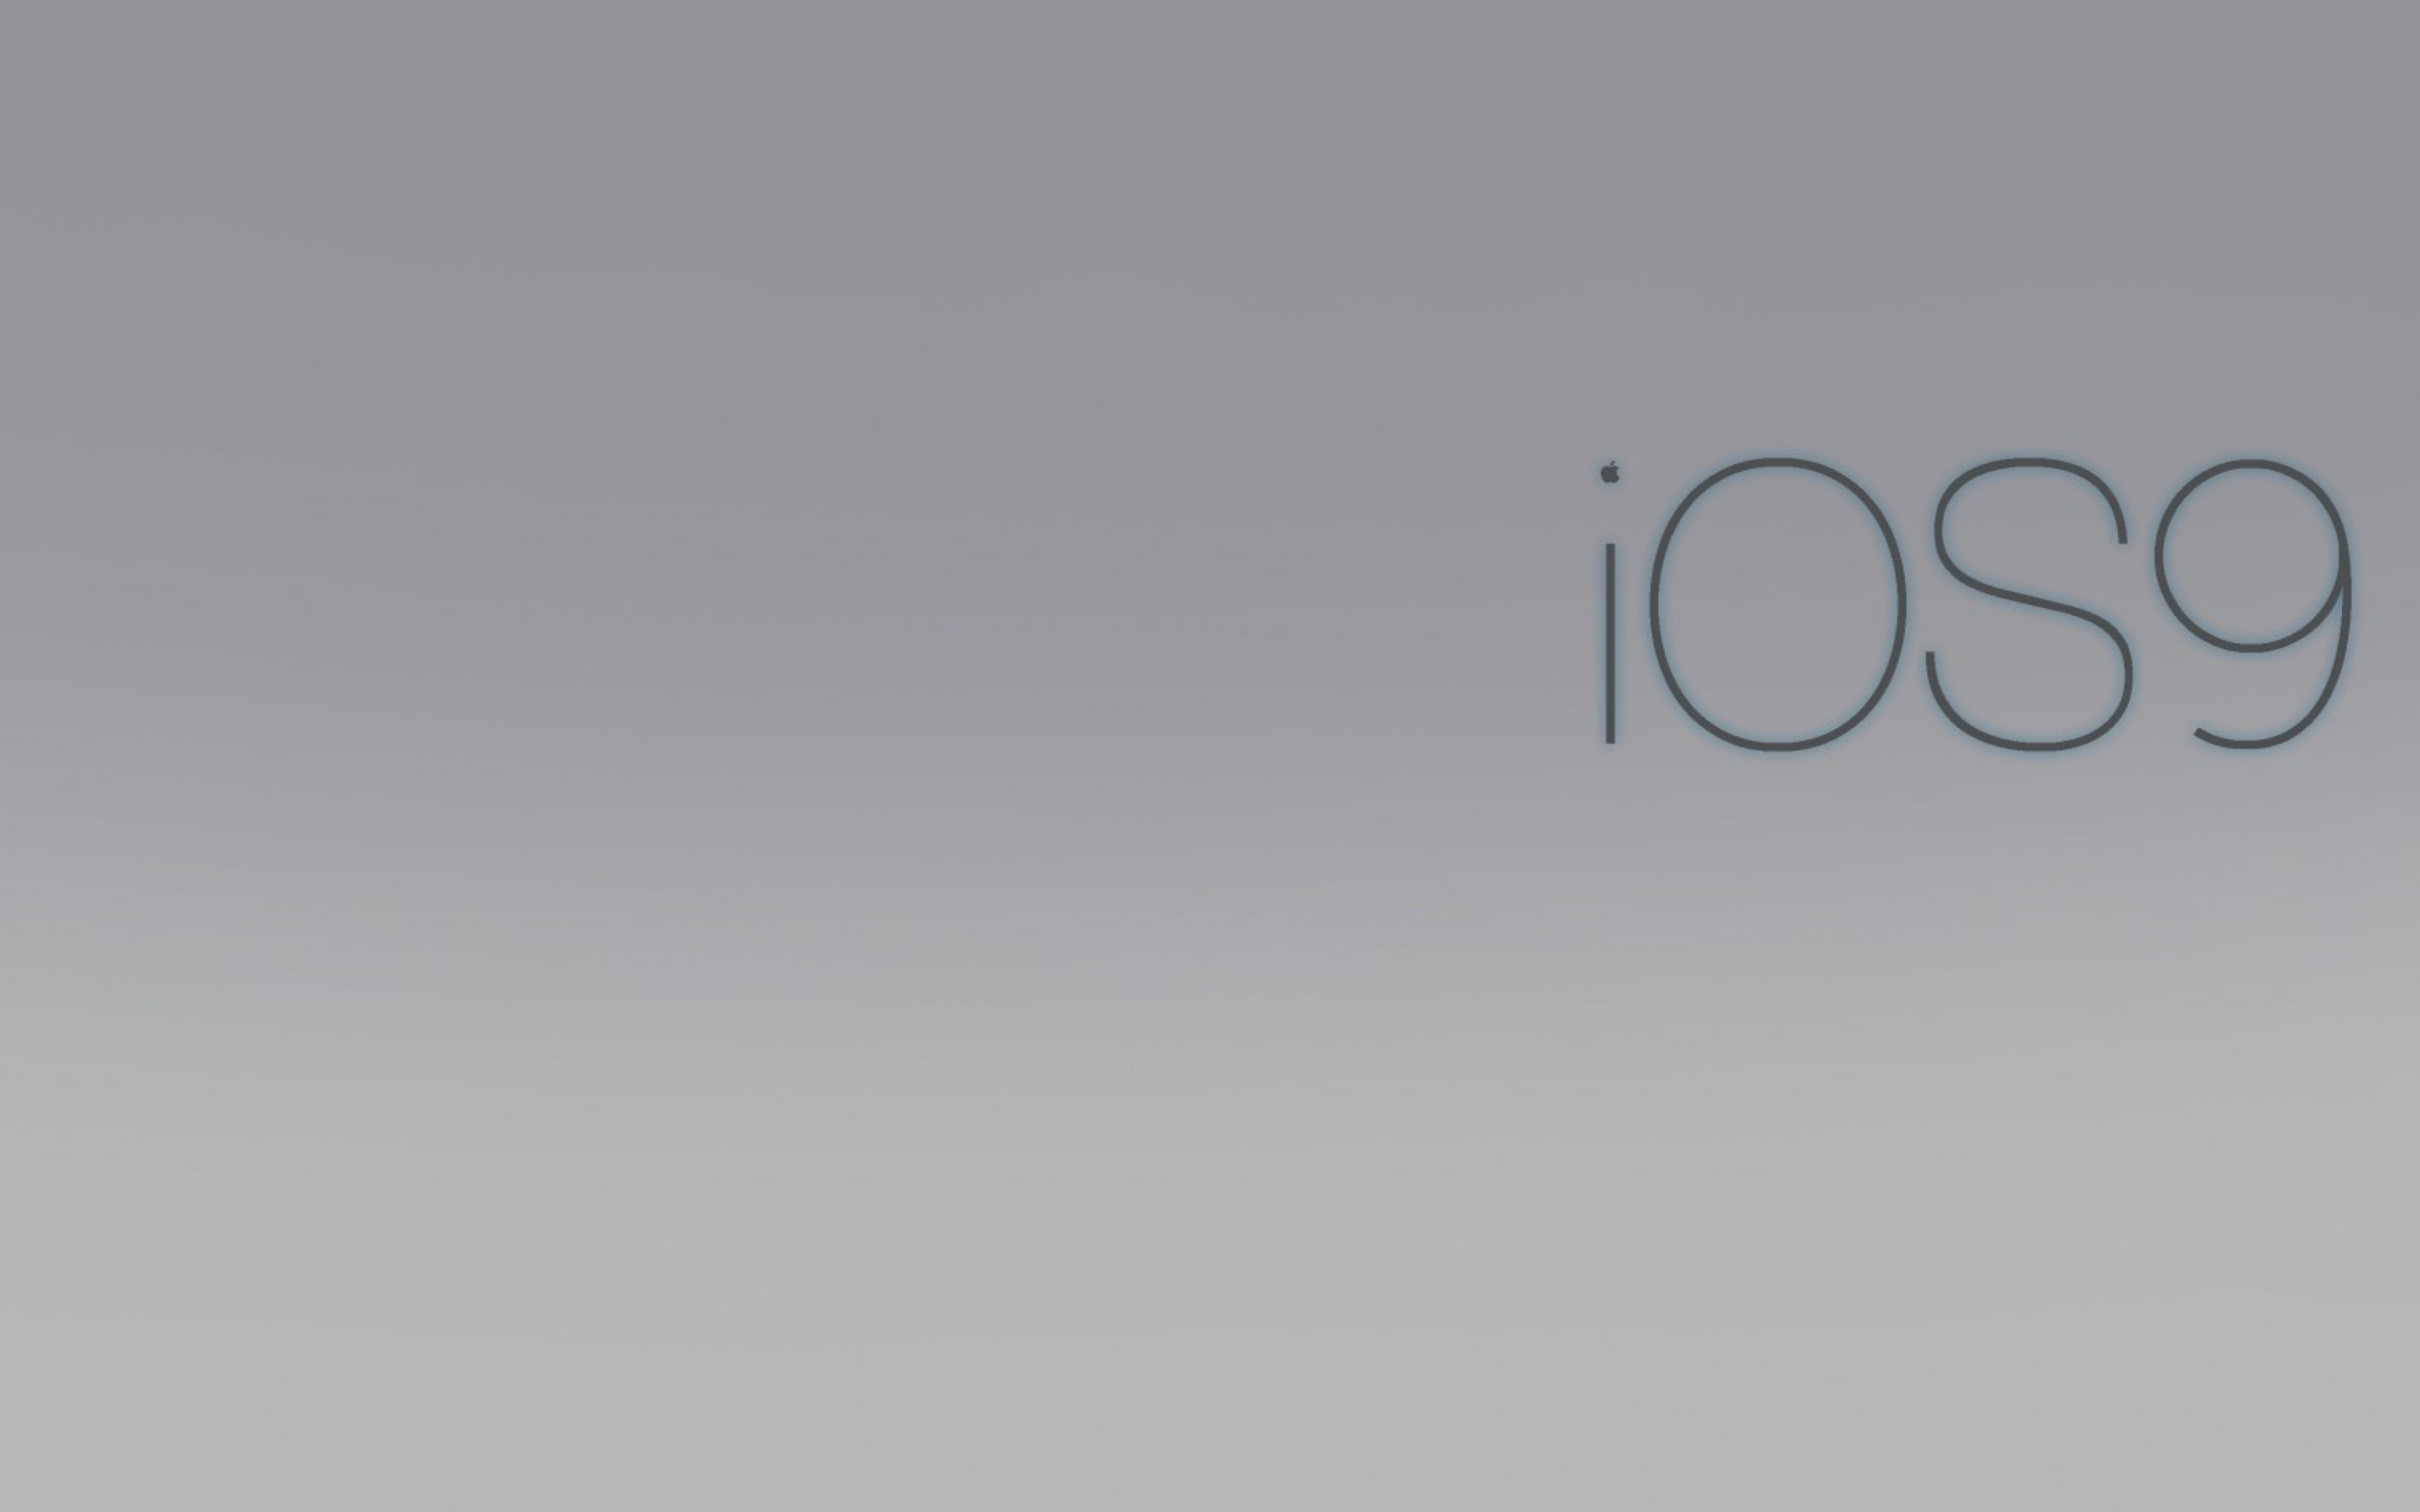 apple-ios9.jpg